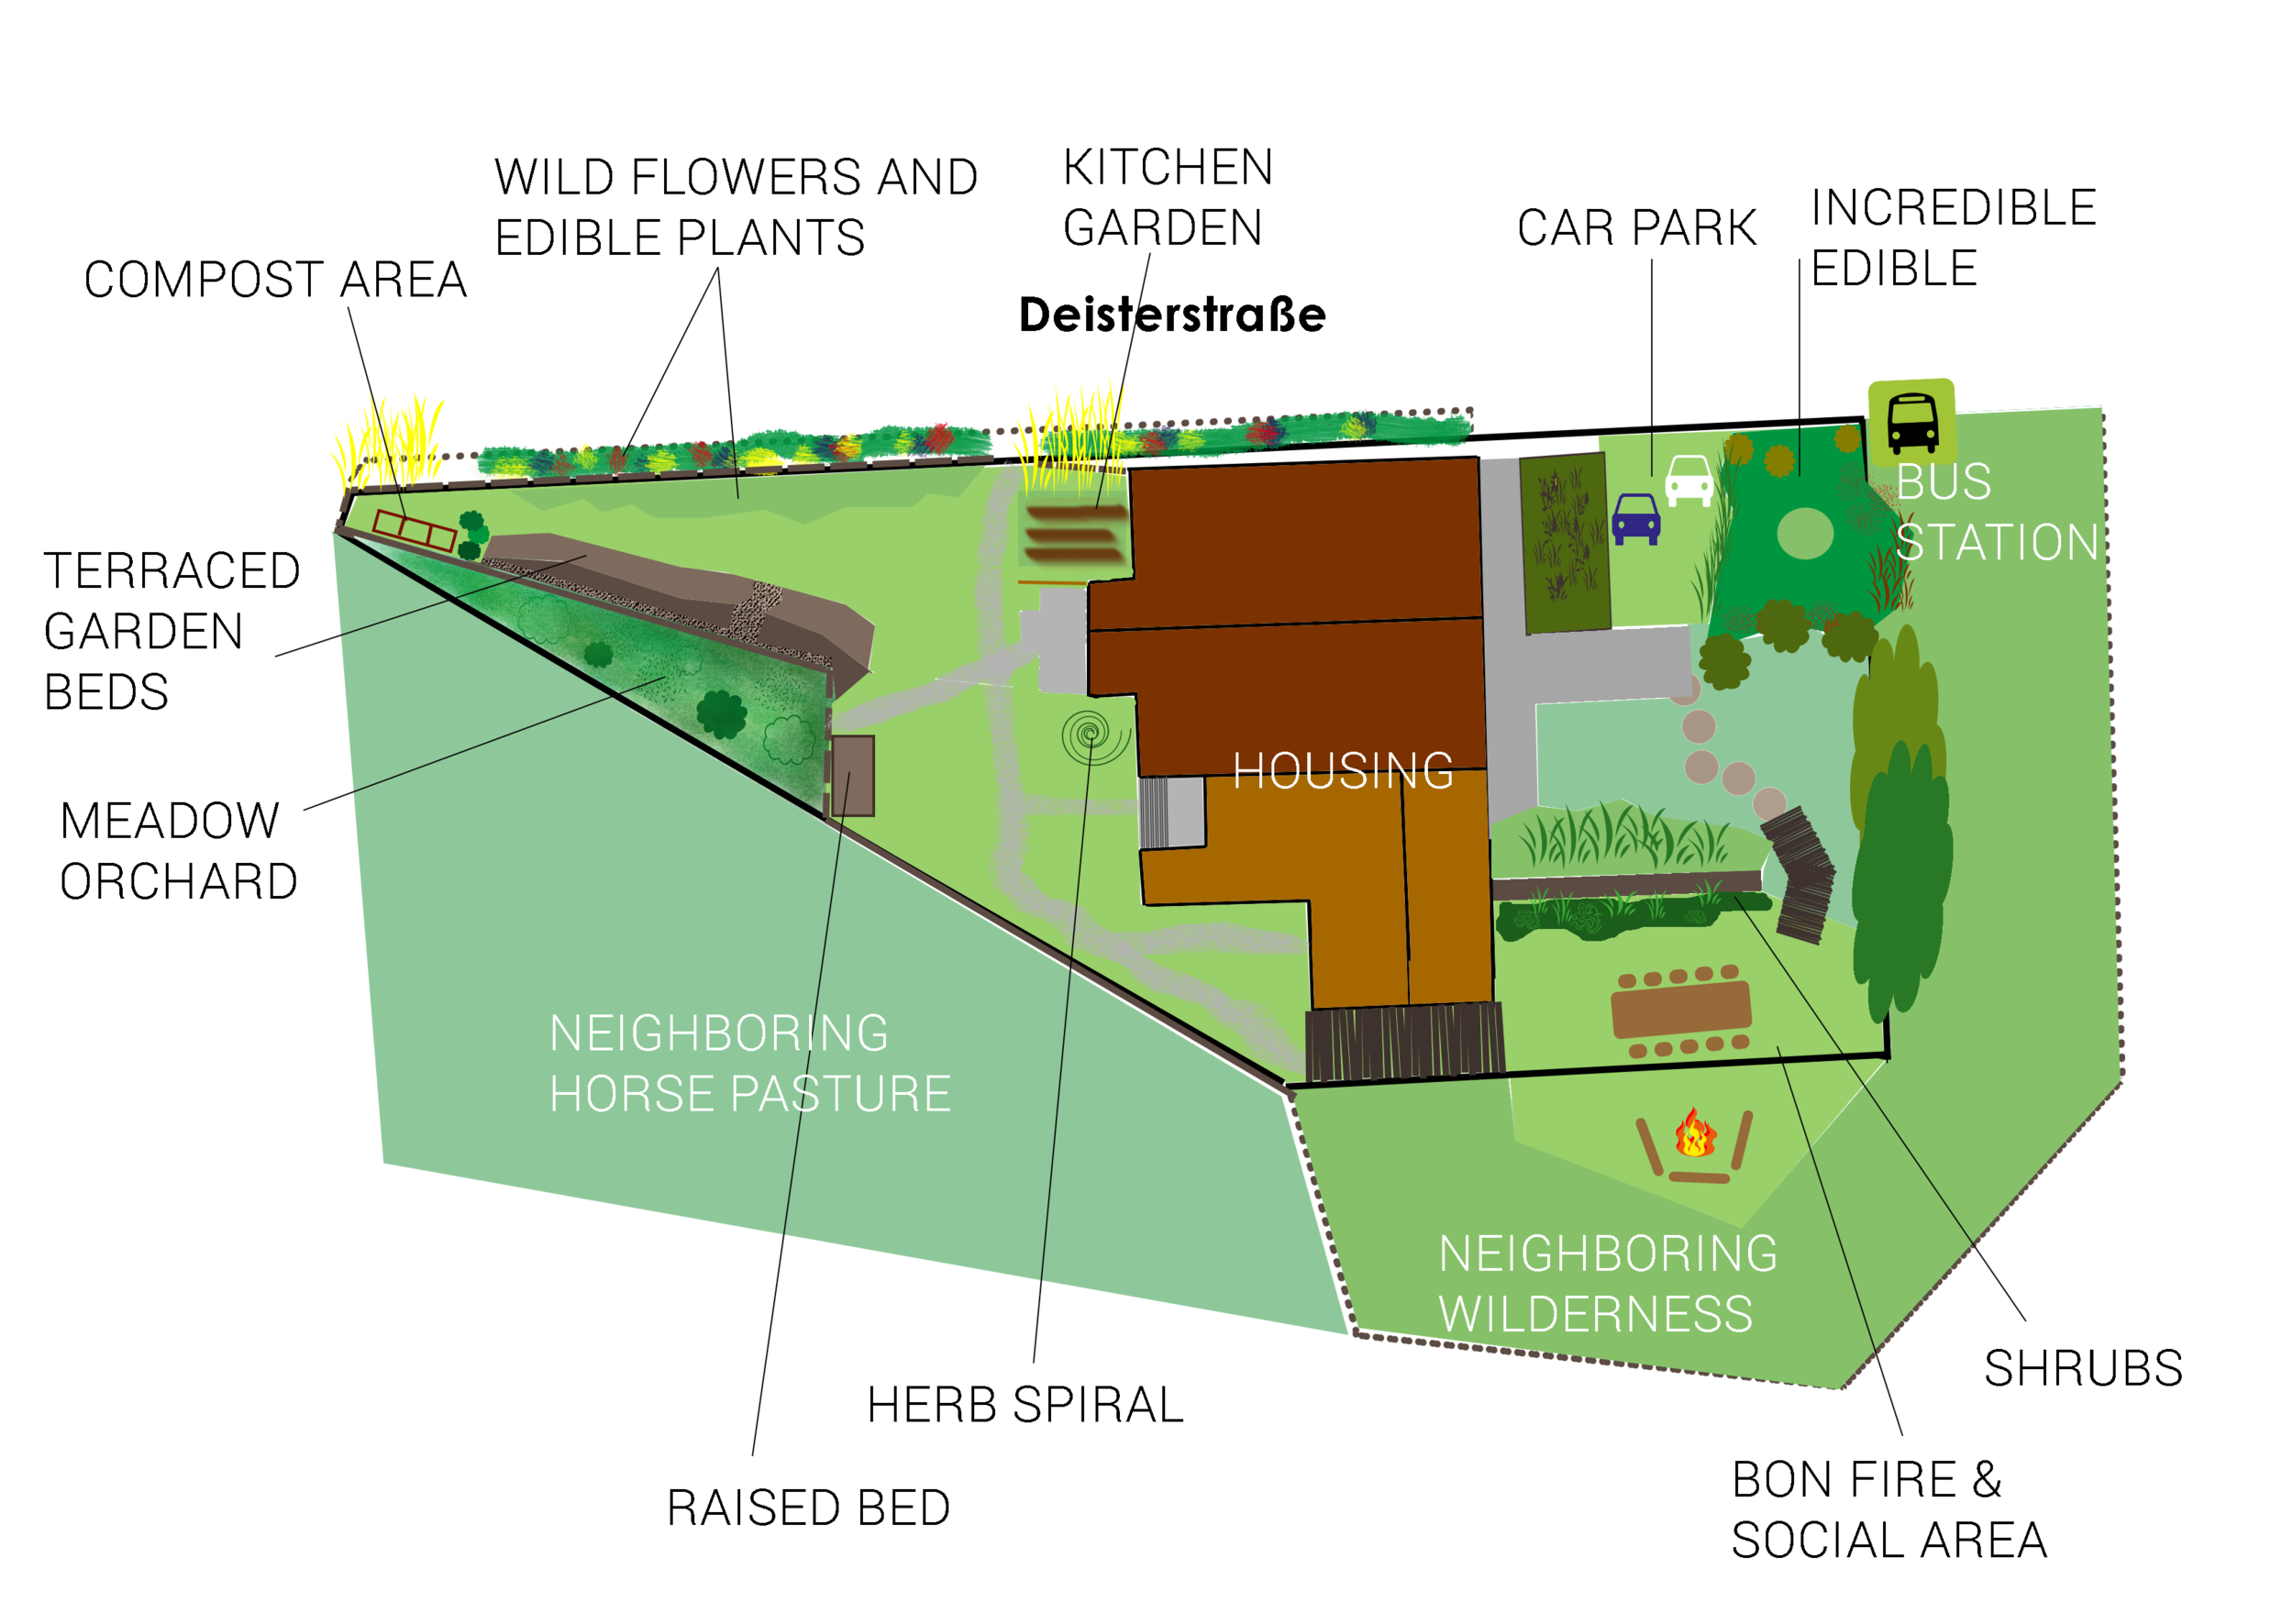 Final permaculture design plan in temperate climate in Hannover, Northern Germany.